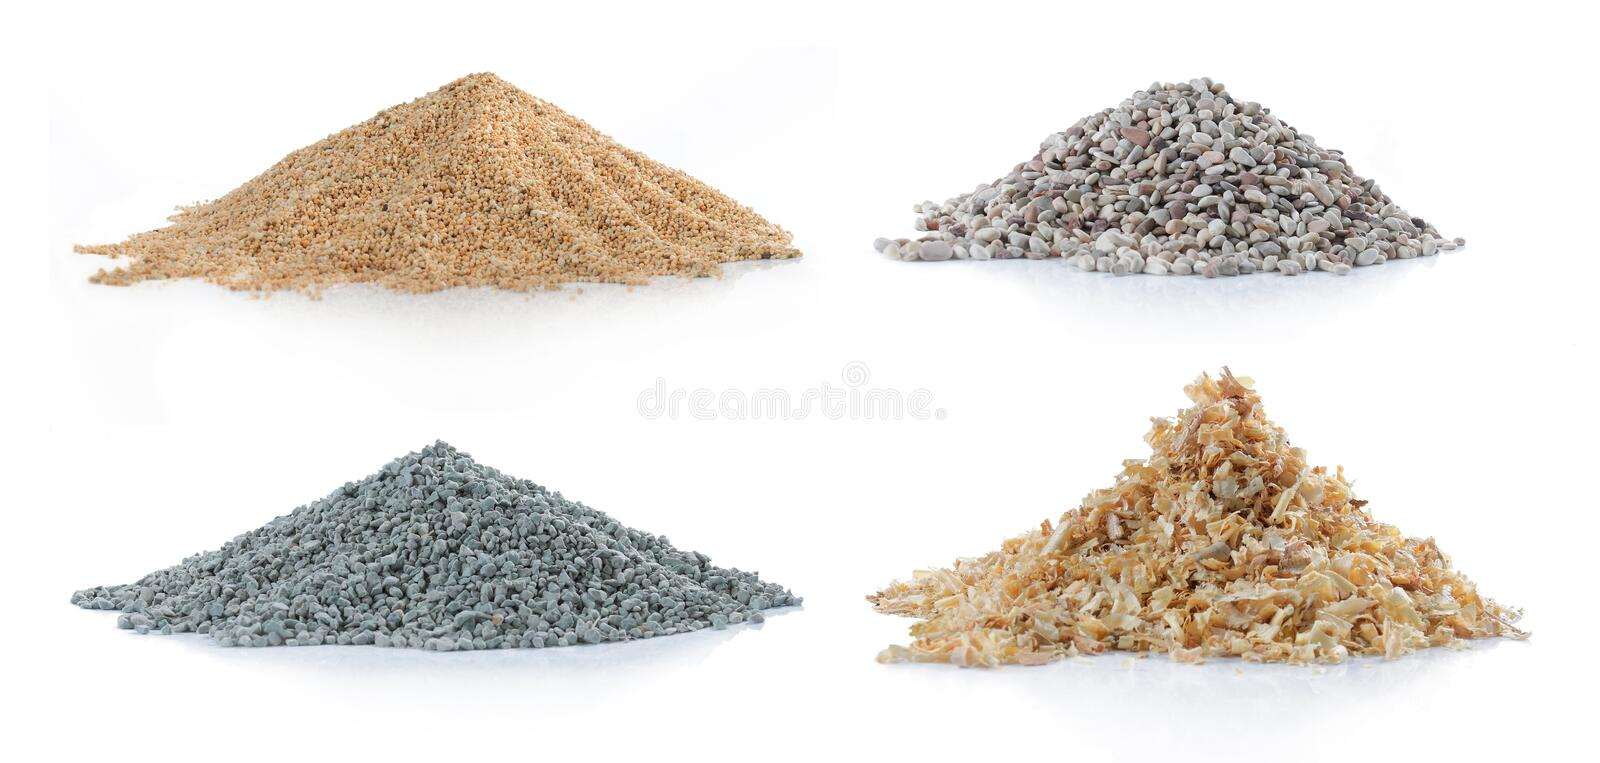 Pile of sand, pine wood, green carbon and rock royalty free stock photo